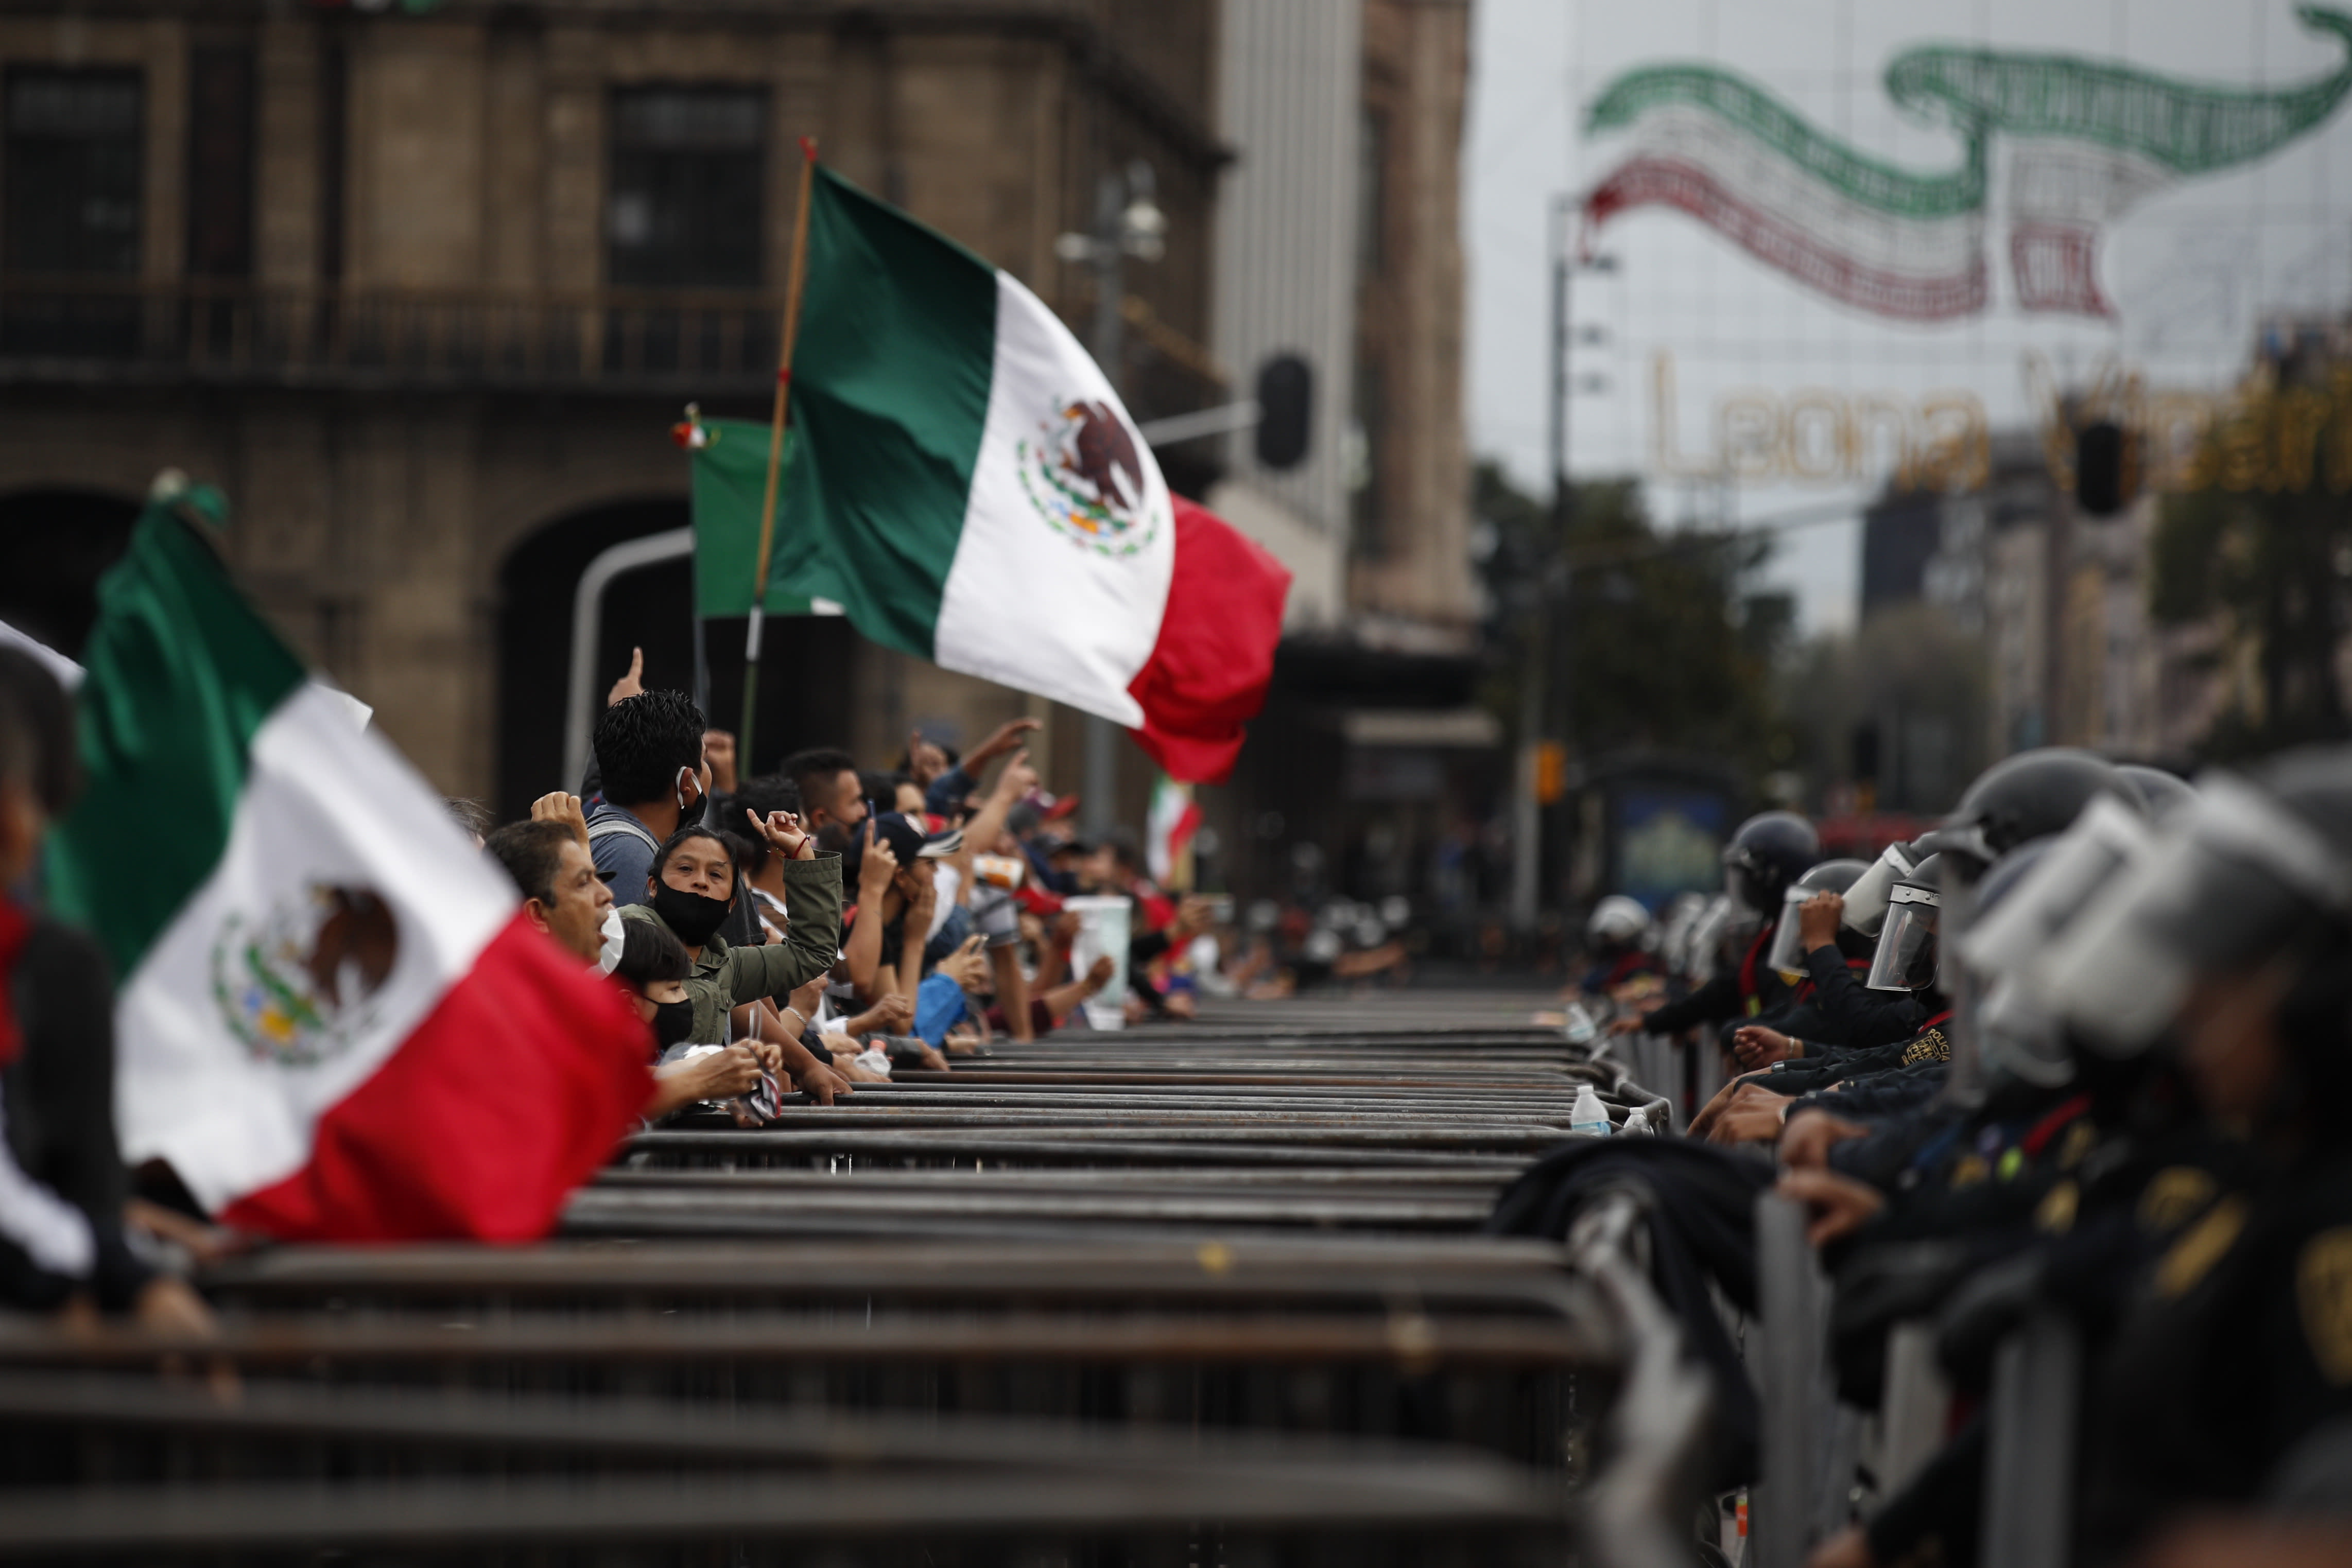 Some participants in a protest marking the sixth anniversary of the forced disappearance of 43 teachers' college students shout over a barricade and a line of police toward unrelated protesters camping out in Mexico City's main square to call for the renunciation of the president, Saturday, Sept. 26, 2020. (AP Photo/Rebecca Blackwell)